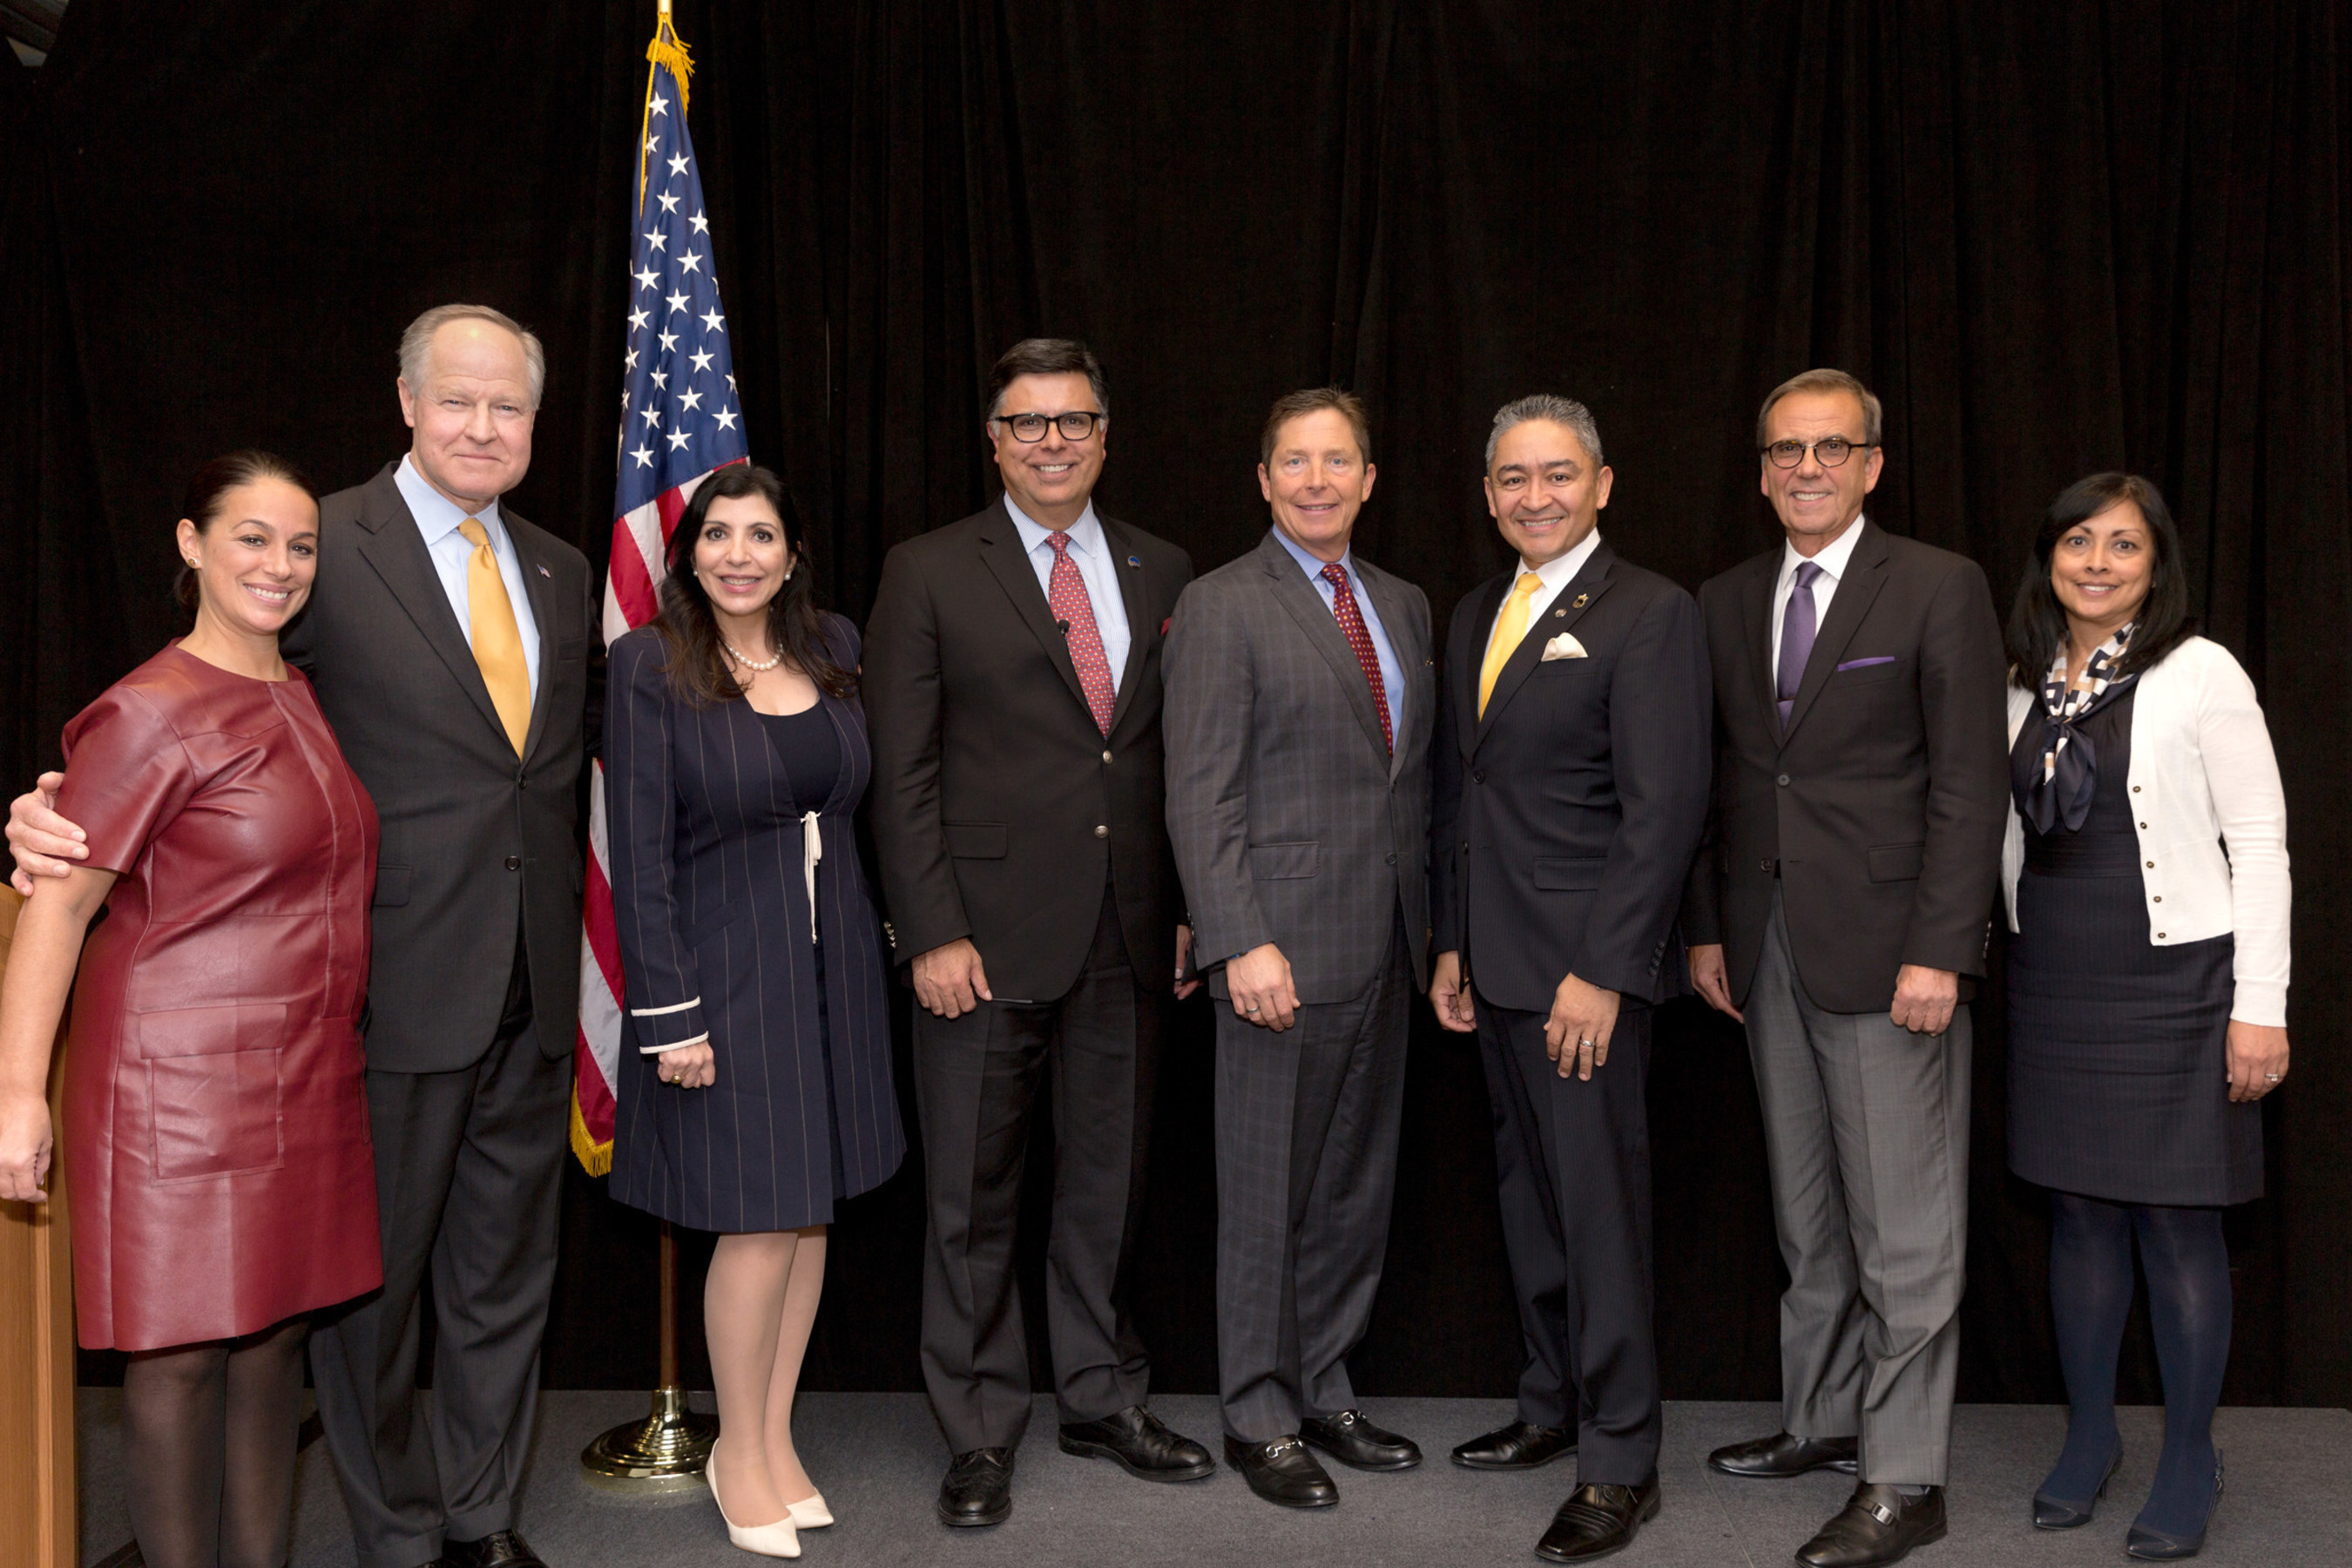 Realogy Hosts '53 Million & One' Pre-Event at its New Jersey Headquarters in Partnership with the National Association of Hispanic Real Estate Professionals